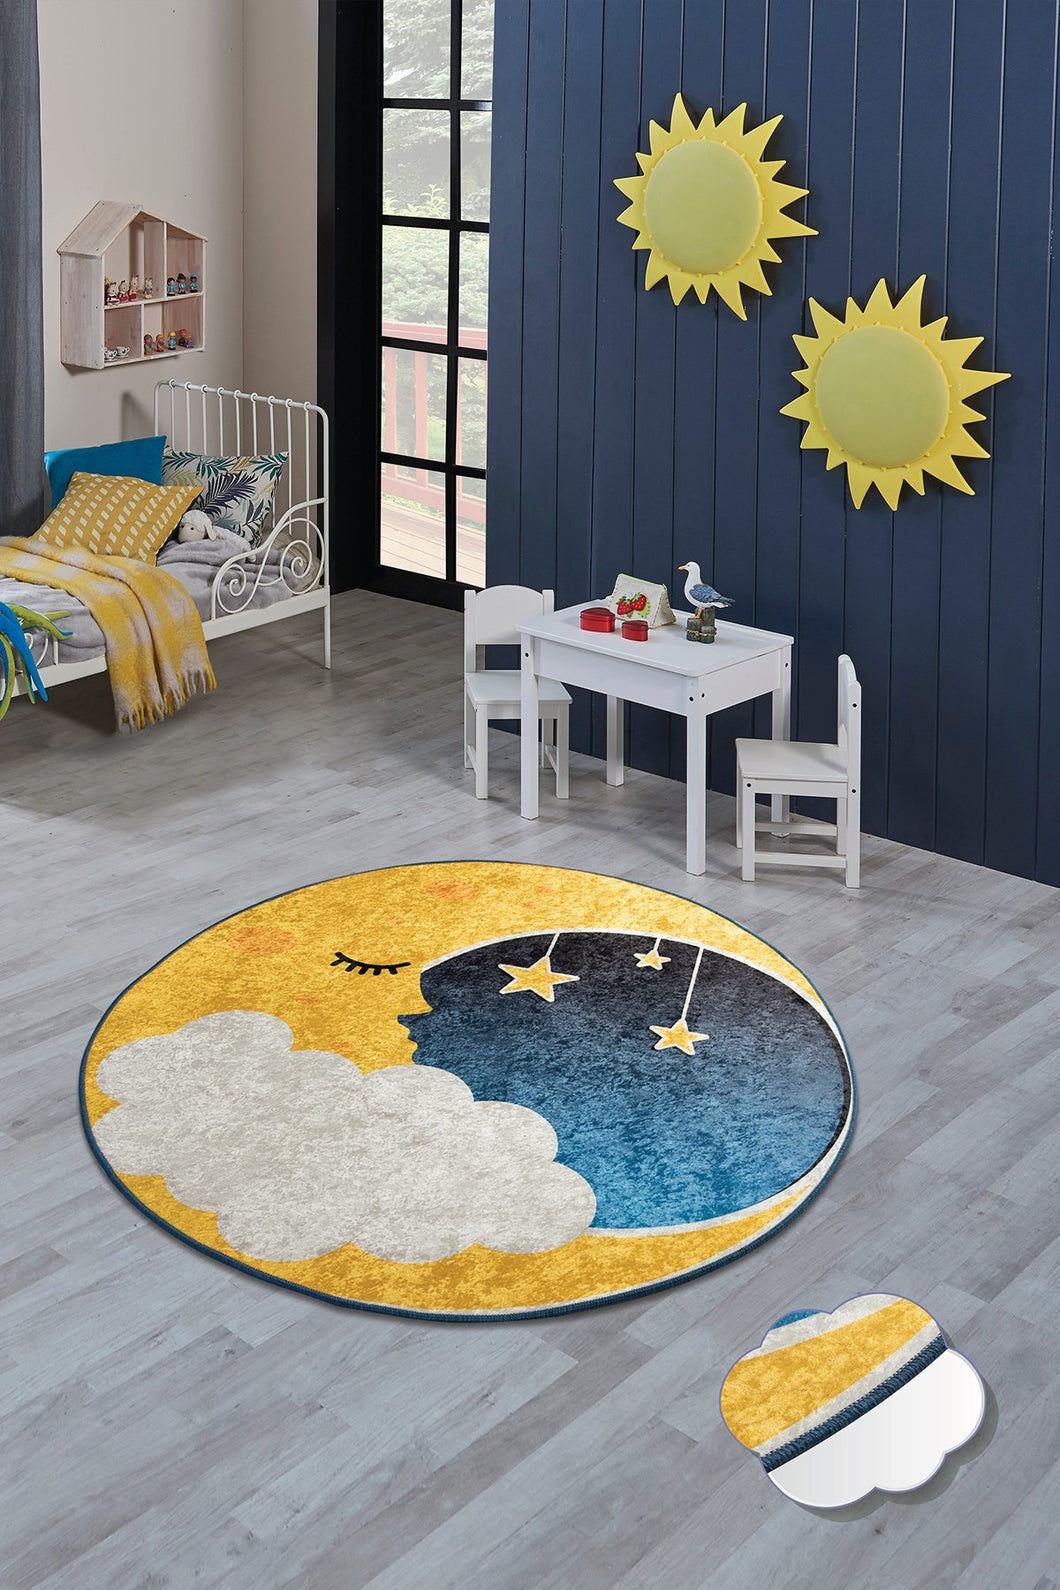 Antdecor Moon Rugs for kids Highway  3'x 5' 39